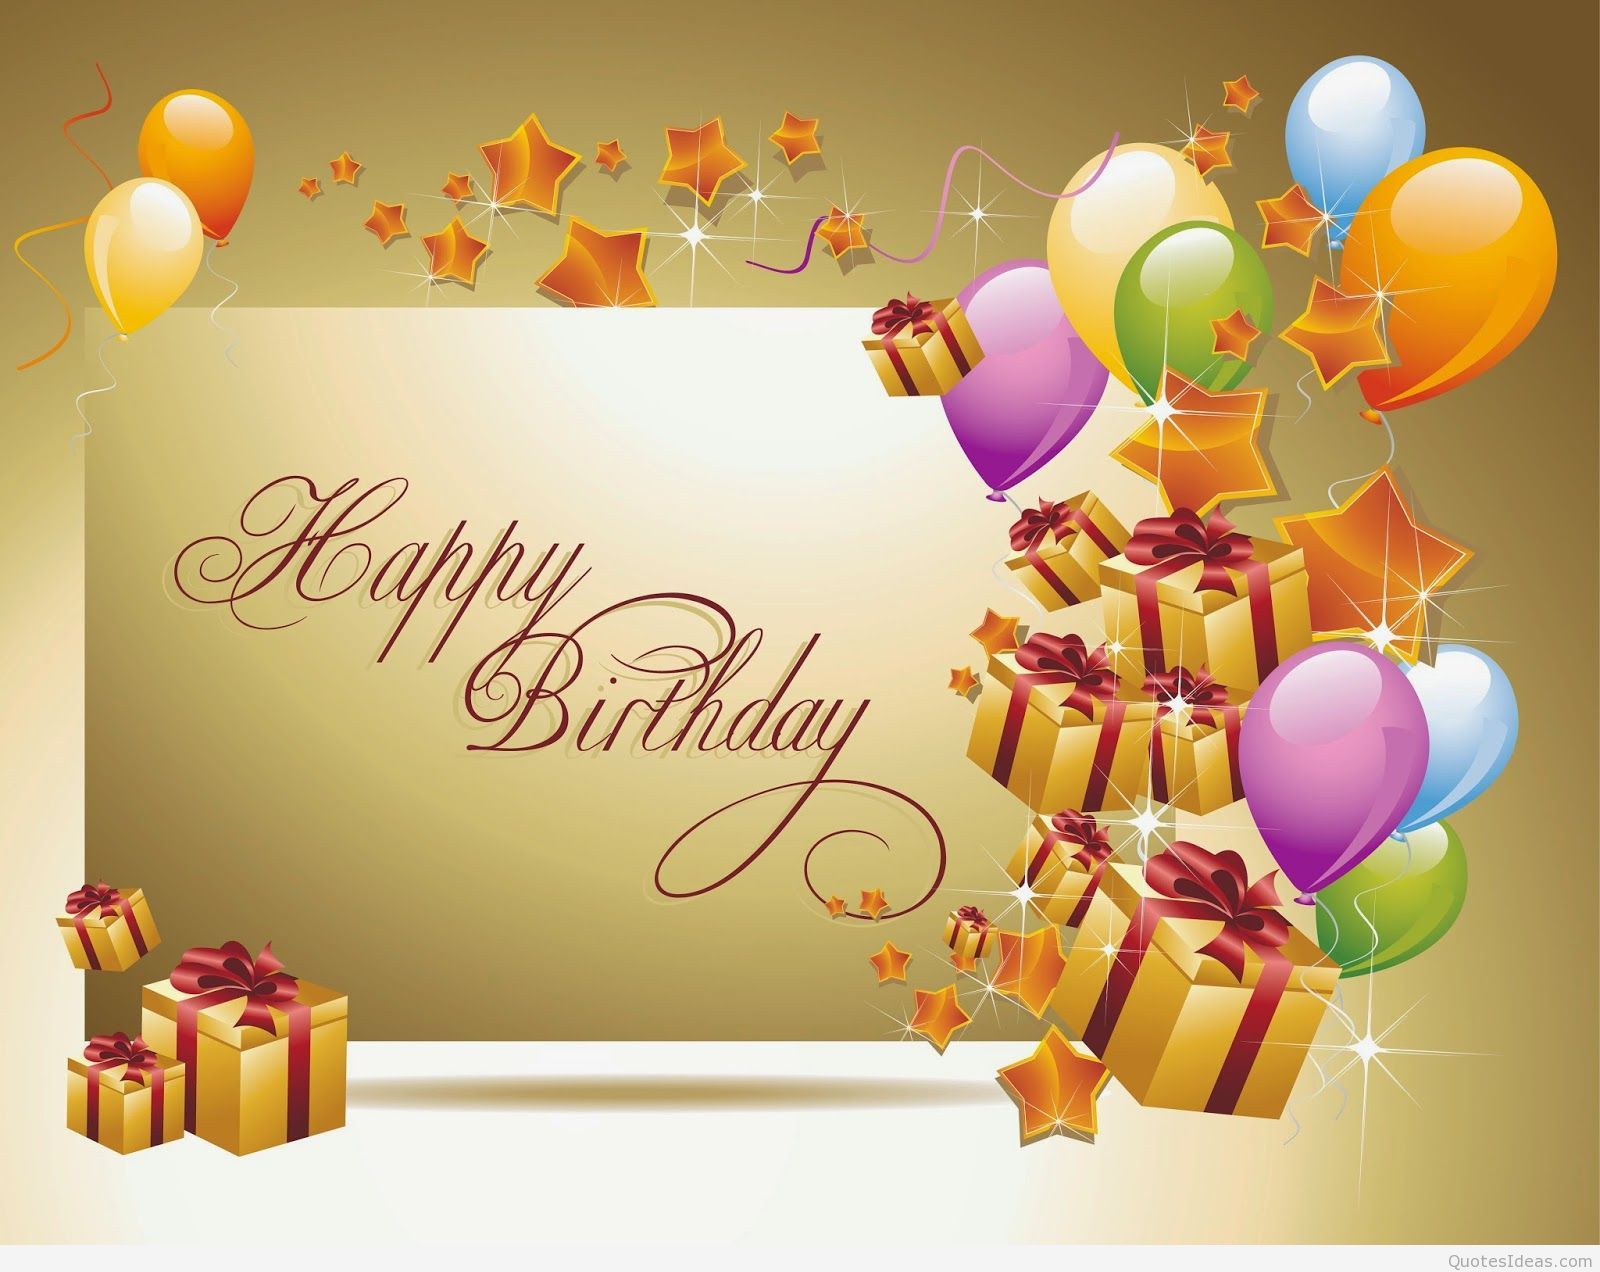 birthday wishes images hd free download ; wallpaper-happy-birthday-hd-5